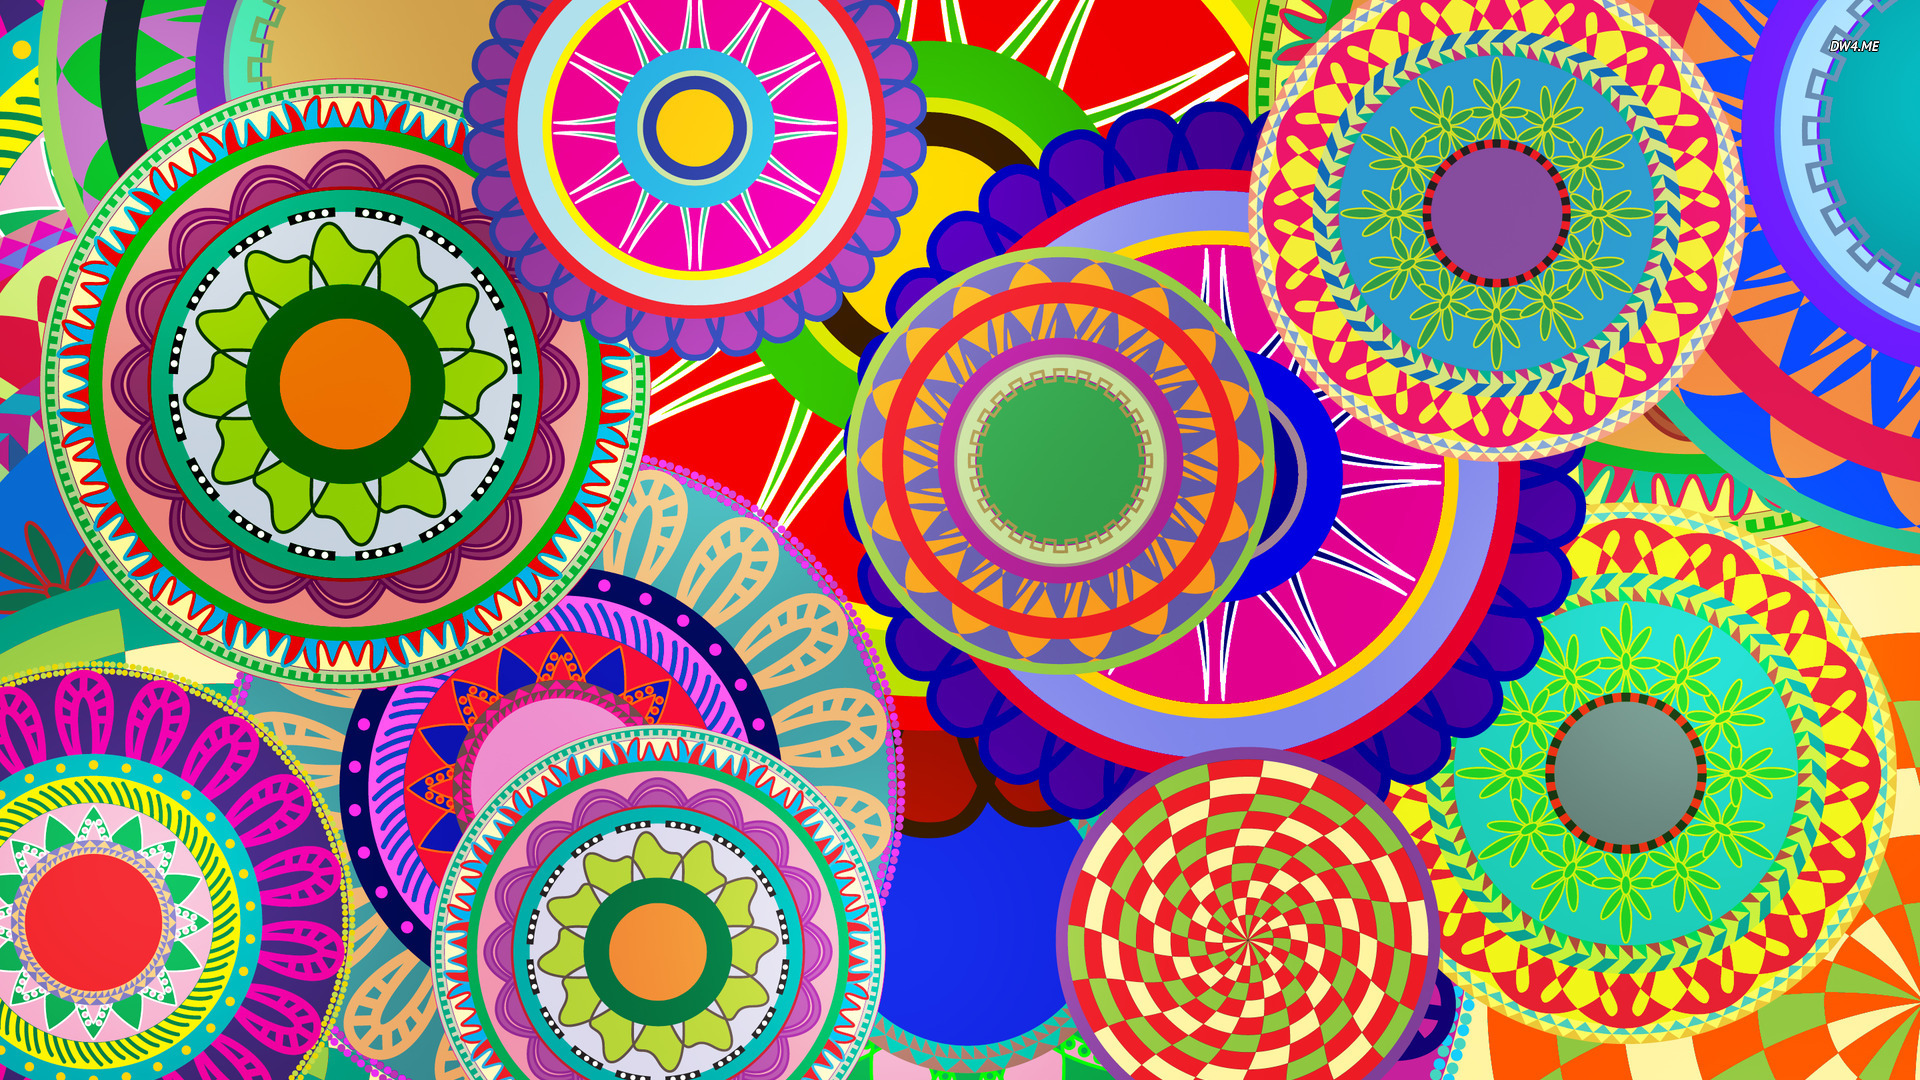 16 Colorful Flowers Vector Designs Wallpaper Images